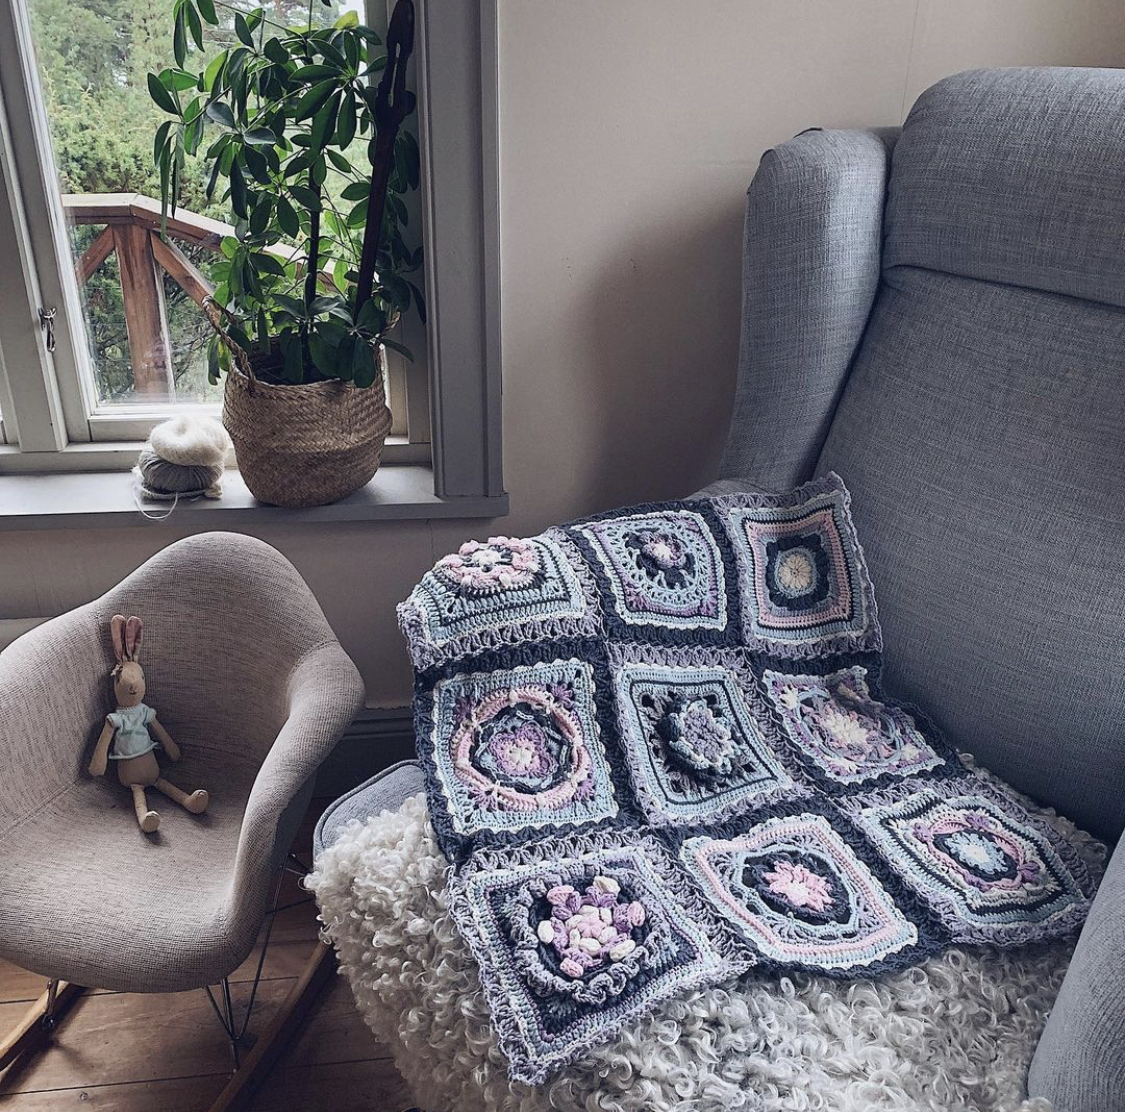 The-Ultimate-Granny-Square-Sourcebook-SistersInStitch-Therese-Eghult-Crochet-Square-Granny-Square-Blanket